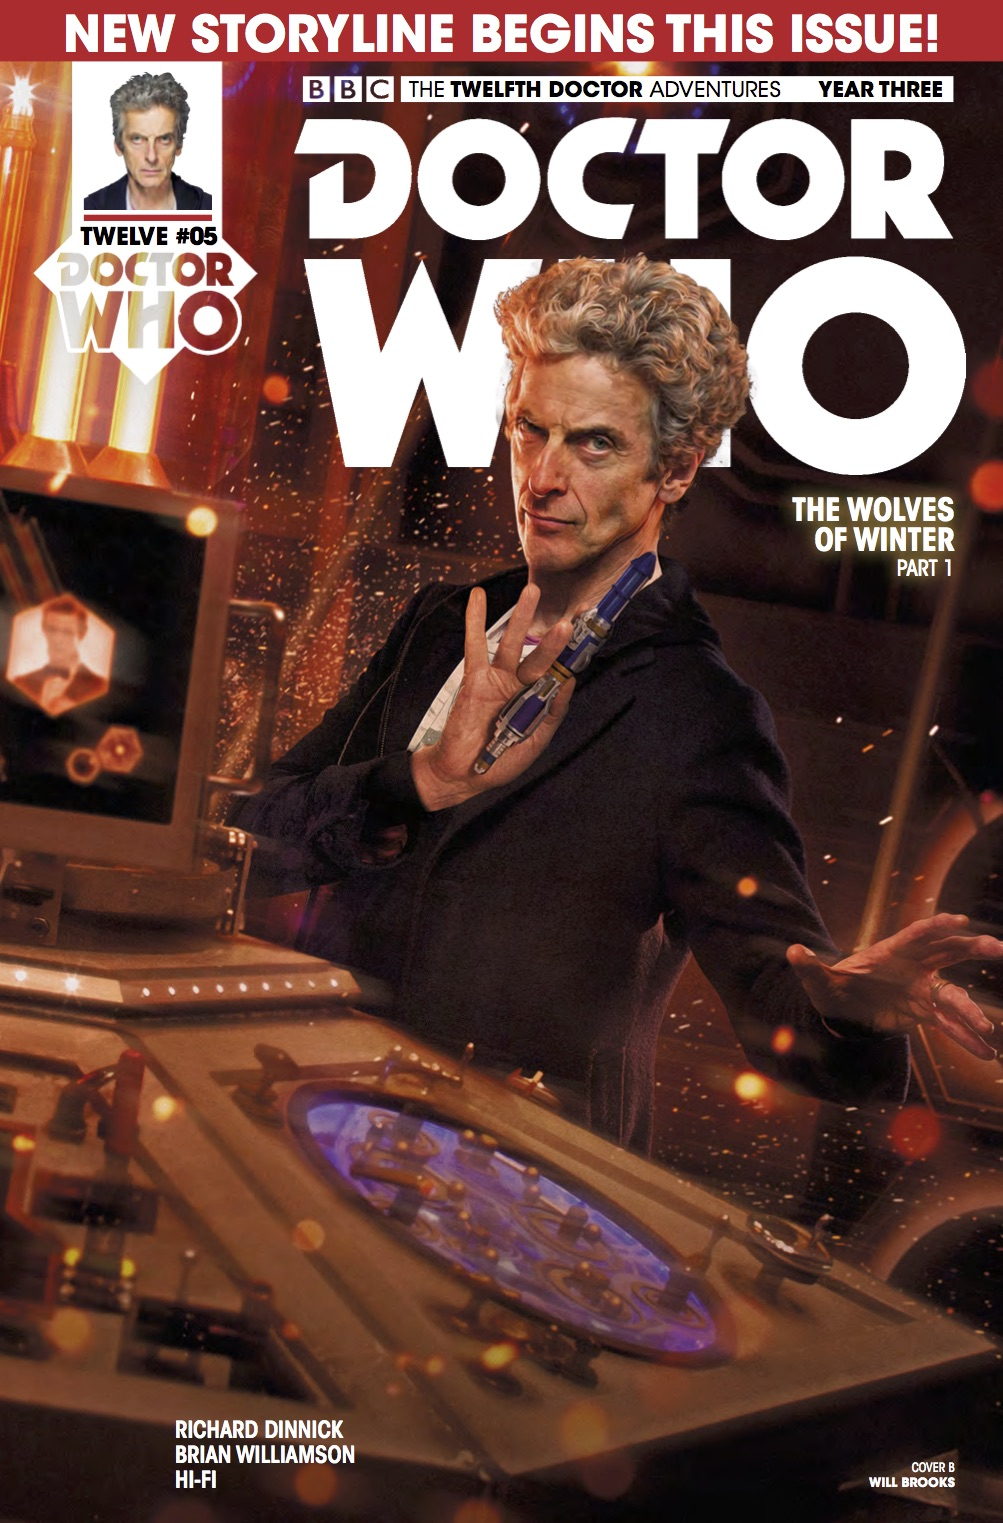 Doctor Who 12th Year Three #5 Cover B (Credit: Titan / Will​ Brooks)